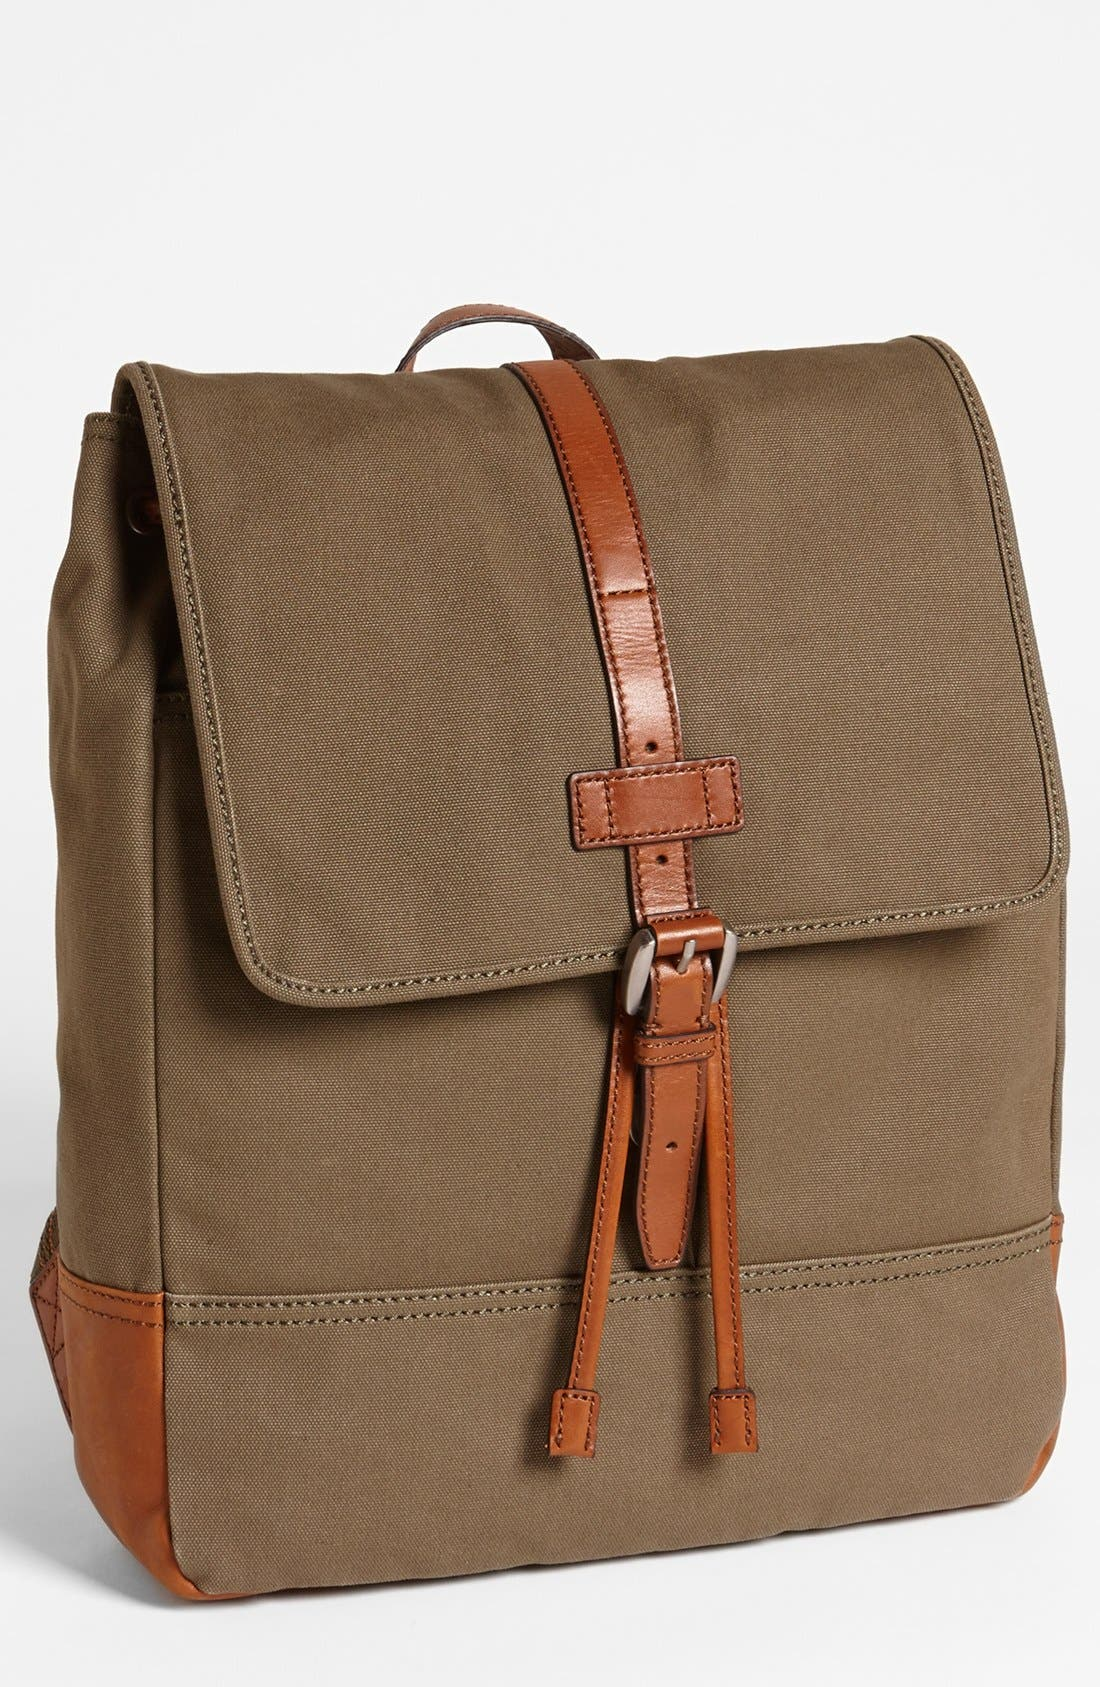 Alternate Image 1 Selected - Fossil 'Emerson' Backpack